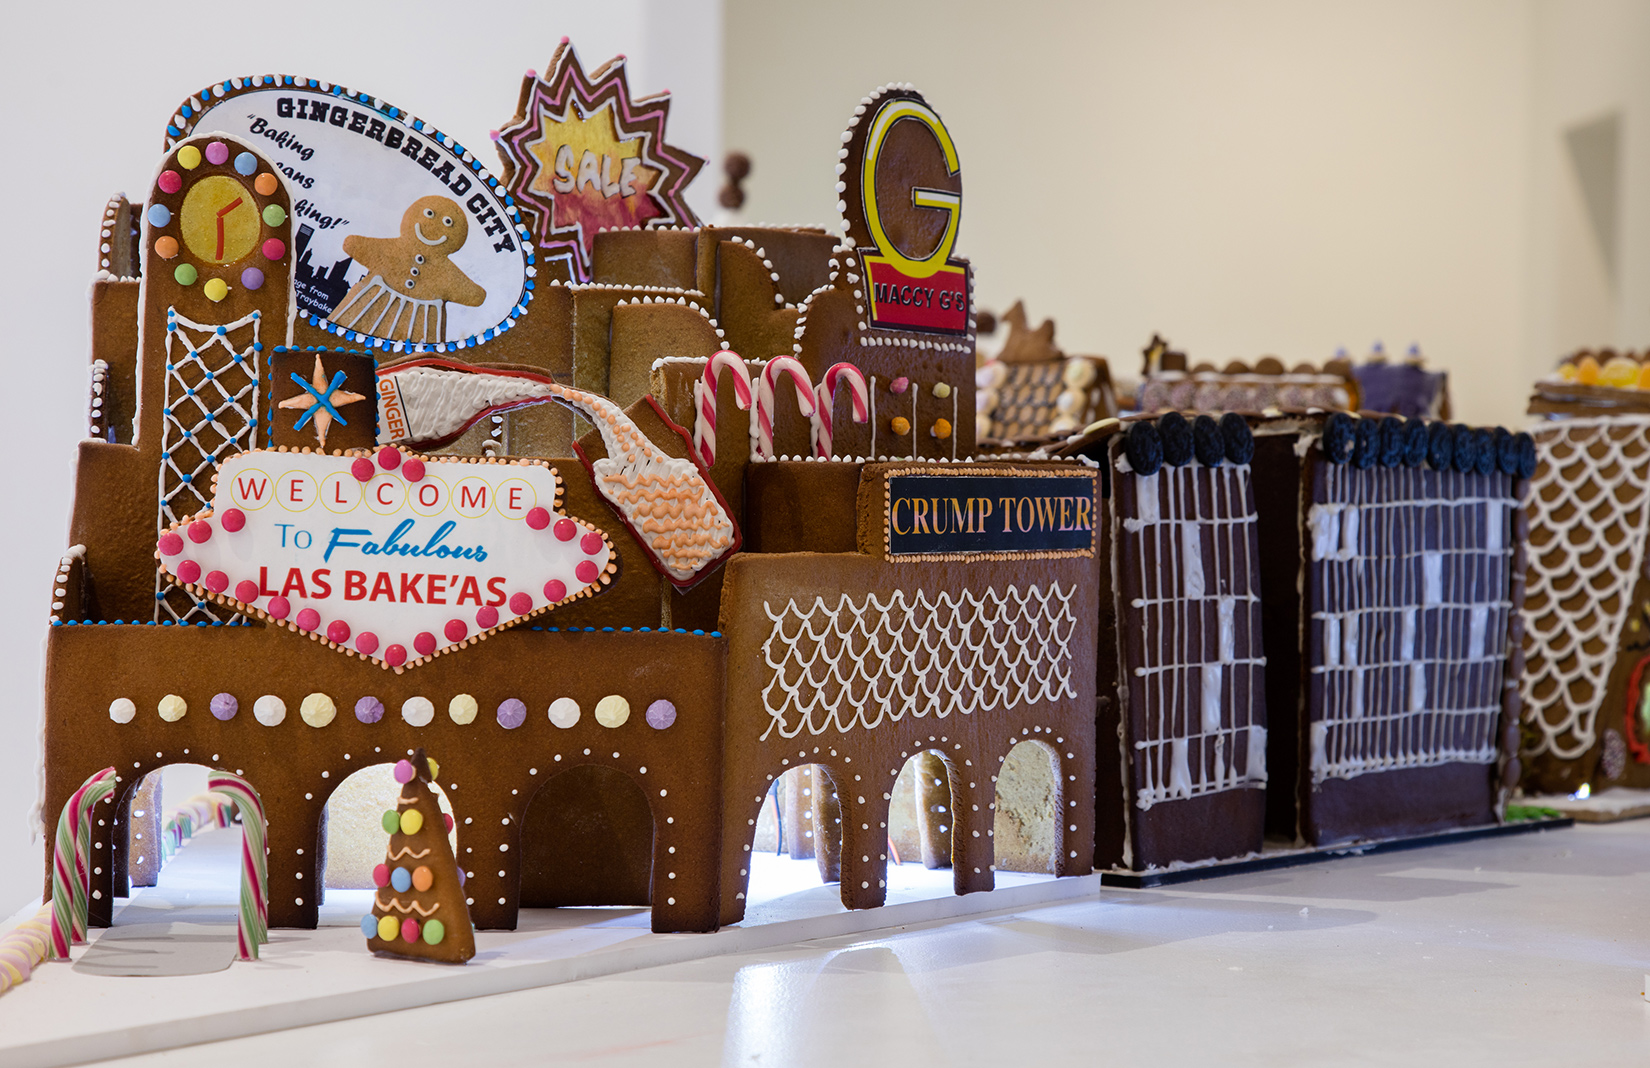 Gingerbread City in London